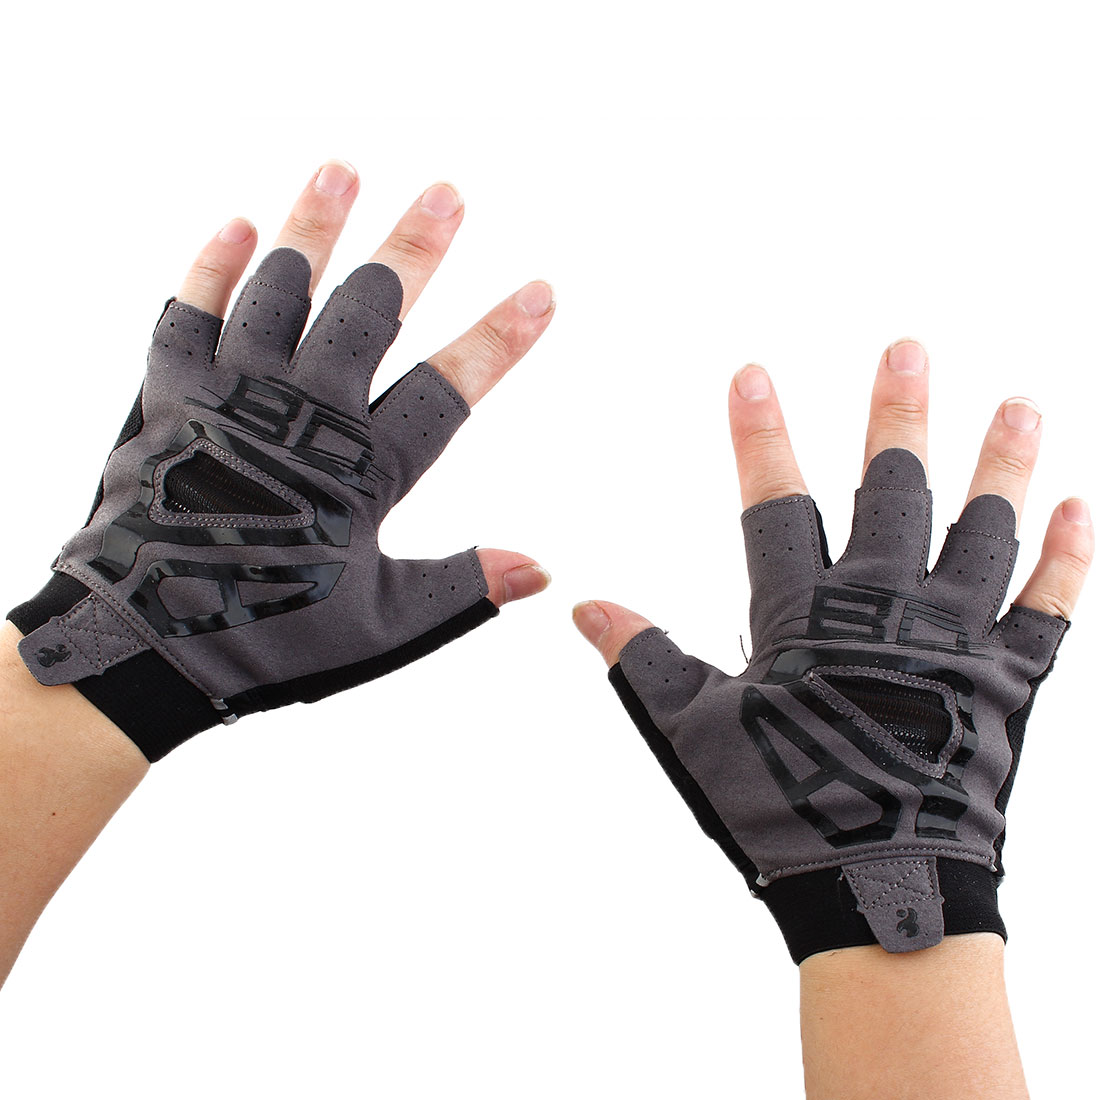 Boodun Authorized Outdoor Cycling Gym Workout Training Yoga Weight Lifting Half Finger Gloves Black Size L Pair